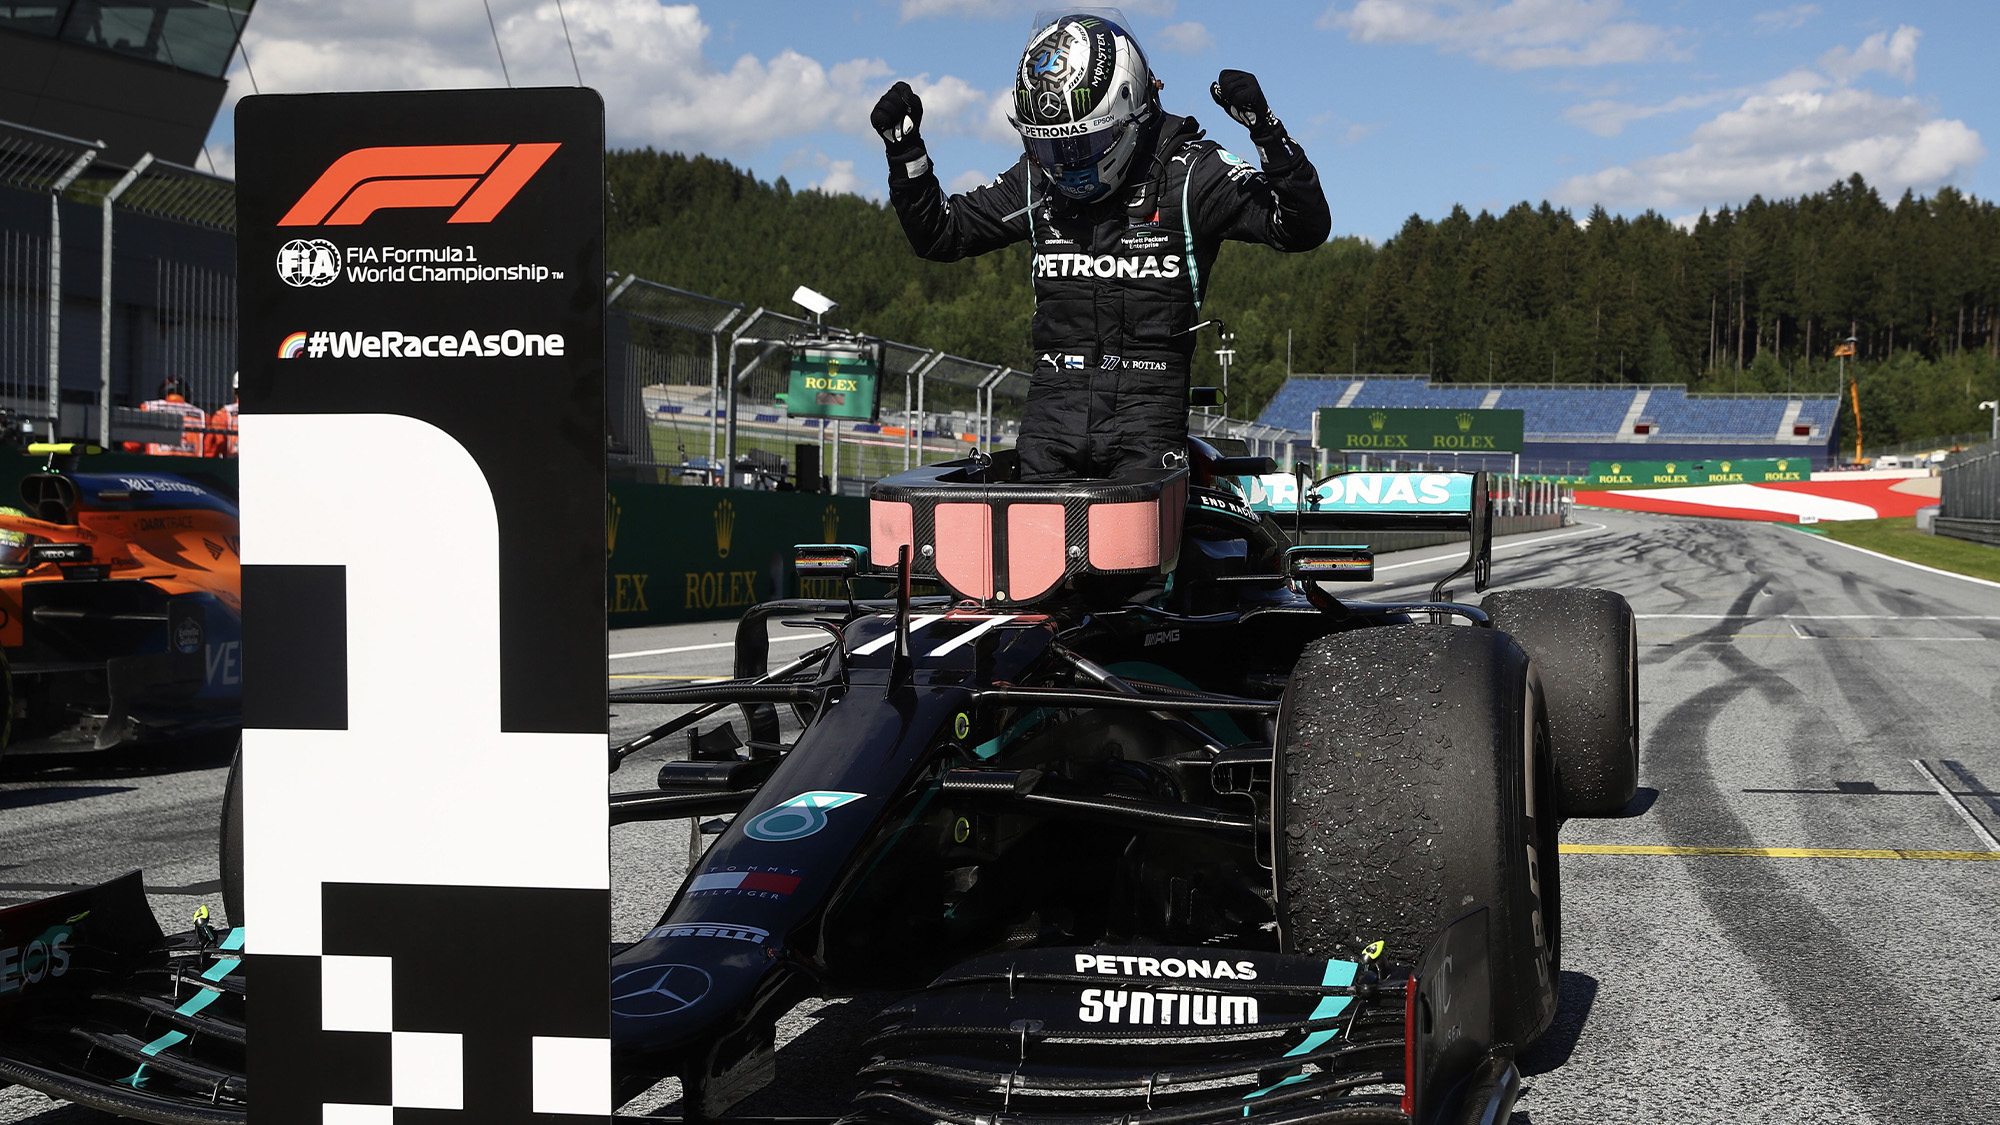 Valtteri Bottas holds his arms in the air as he steps out of his car after winning the 2020 F1 Austrian grand prix